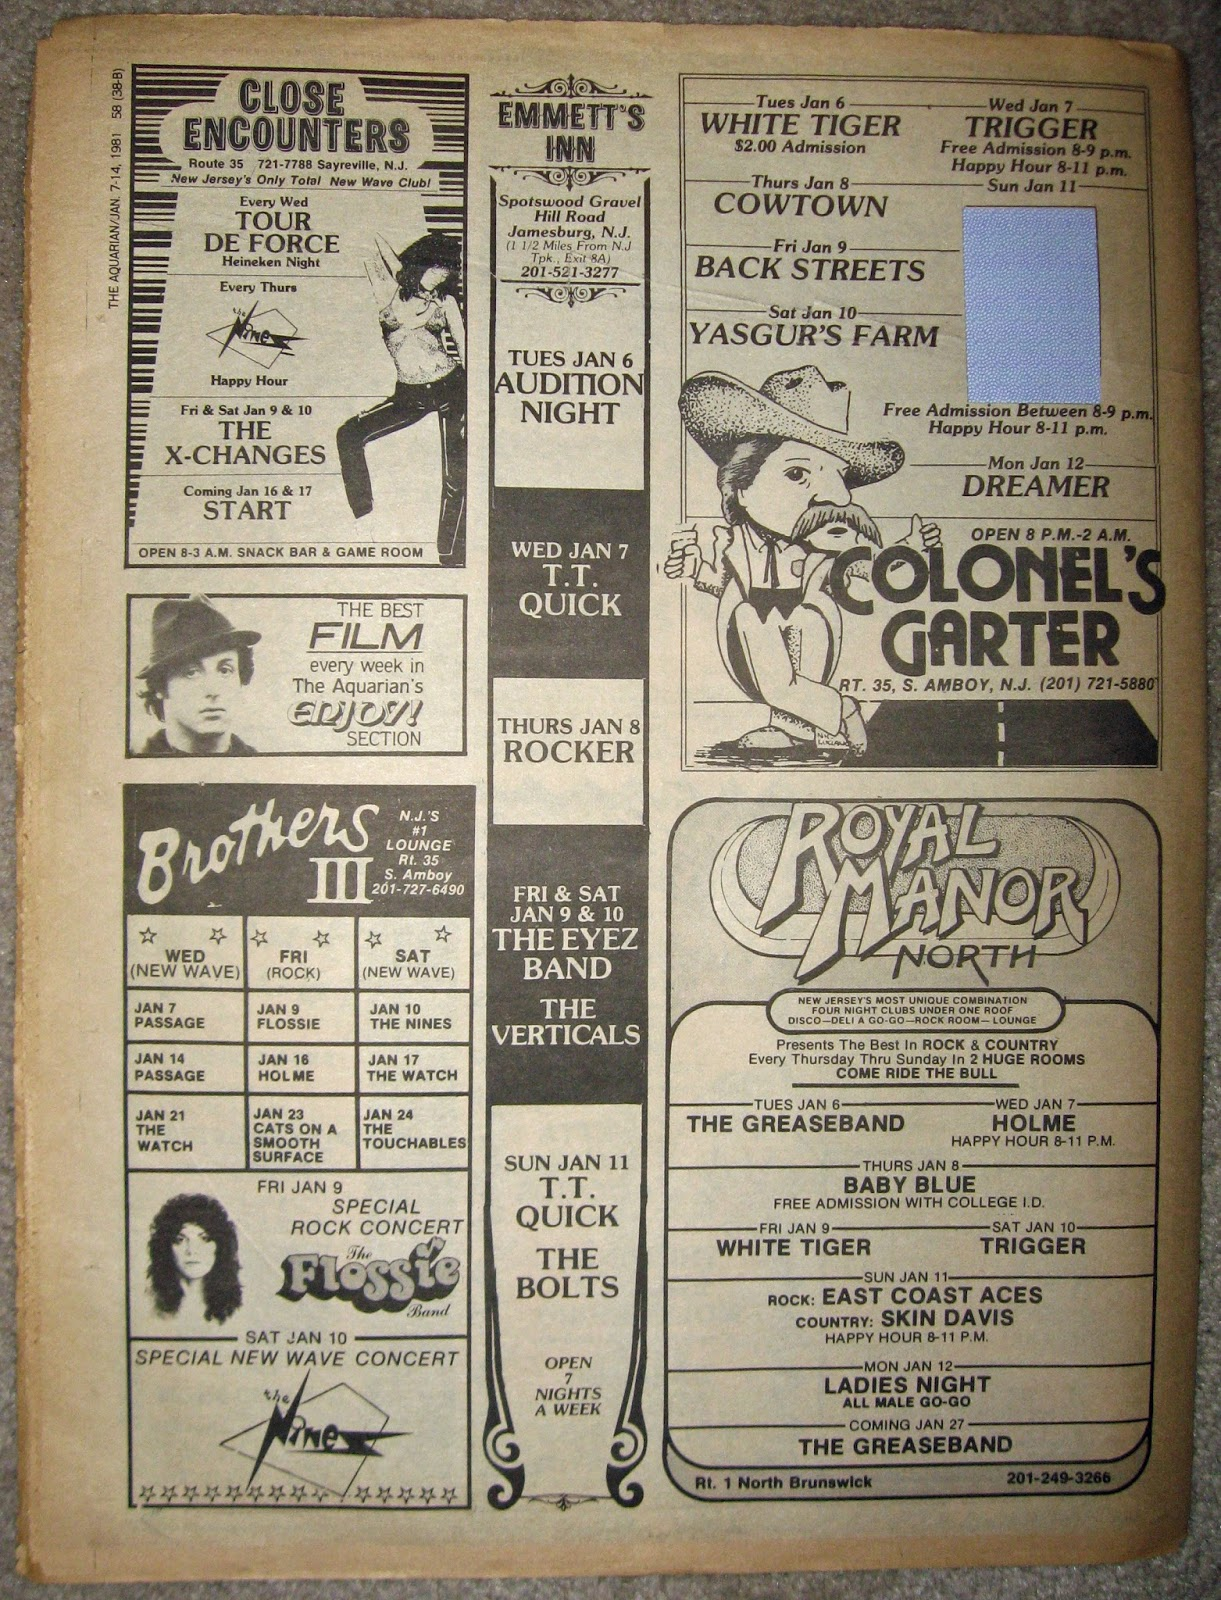 Colonel's Garter - Royal Manor North - Emmett's Inn - Close Encounters - Brother's 3 band line ups 1981